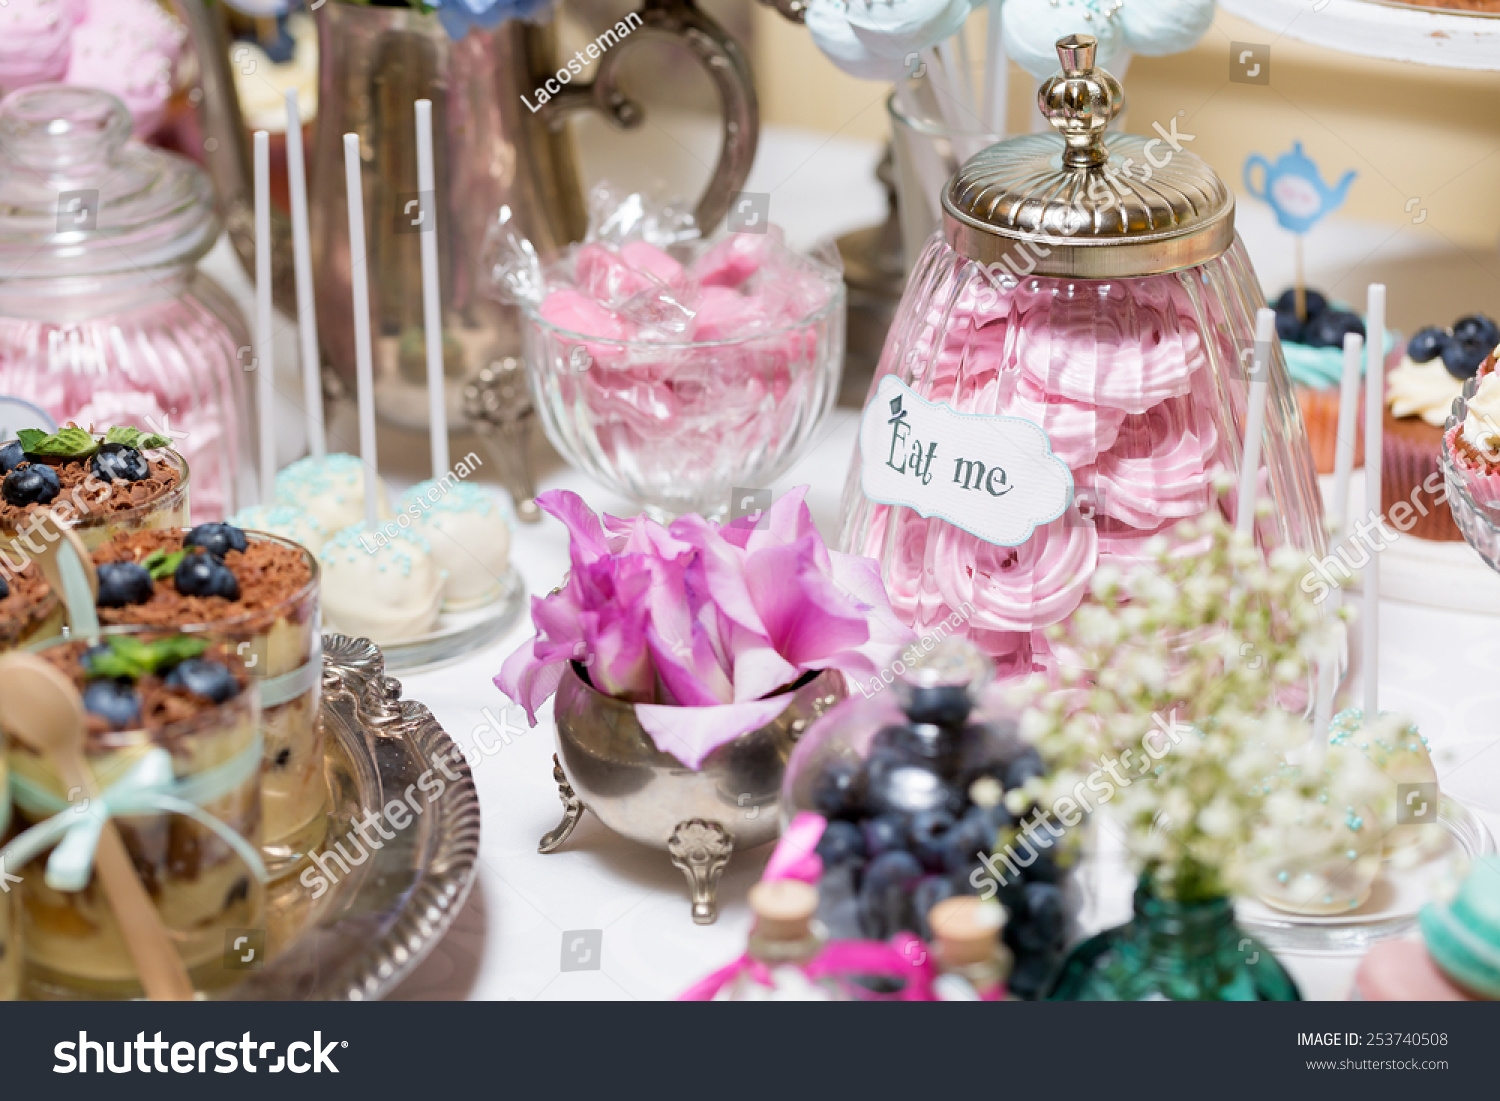 Royalty-free Candy bar at a wedding in the style of… #253740508 ...